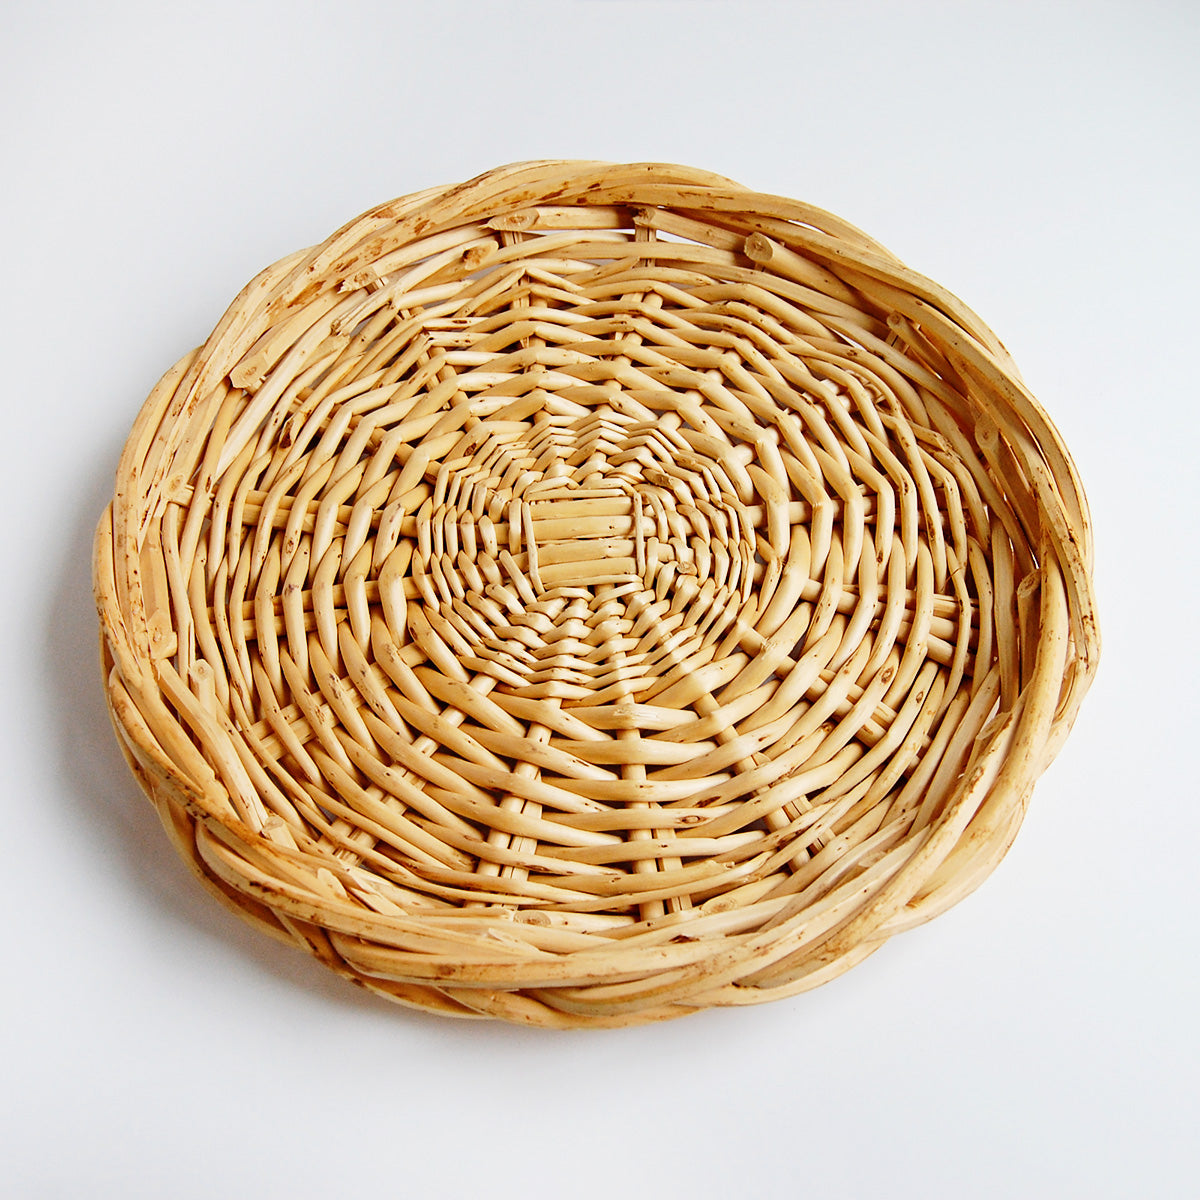 Vintage Woven Rattan Tray